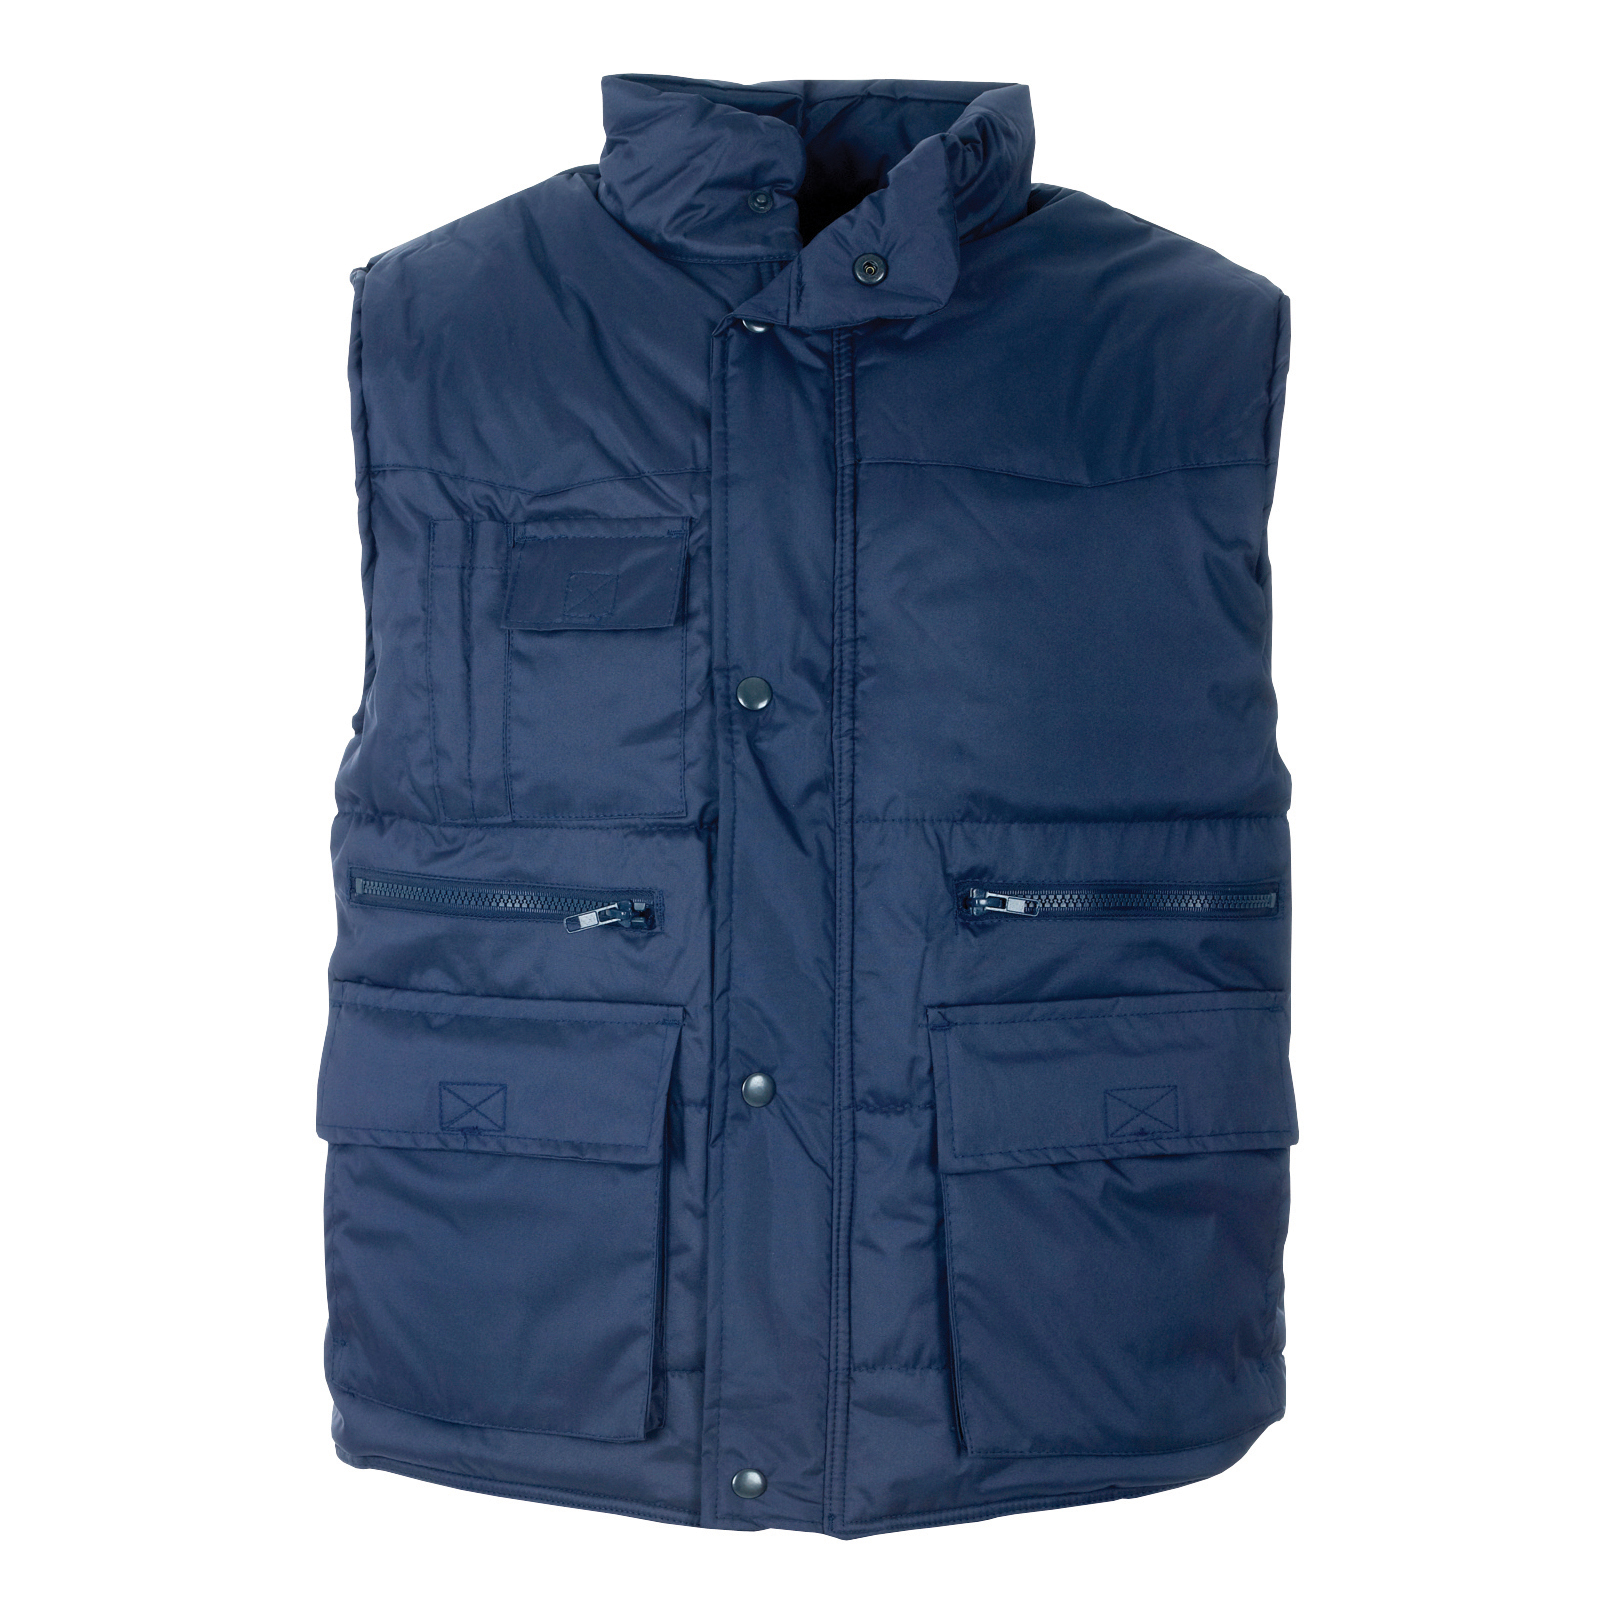 Body Warmer Polyester with Padding & Multi Pockets 2XL Navy Ref HBNXXL Approx 3 Day Leadtime